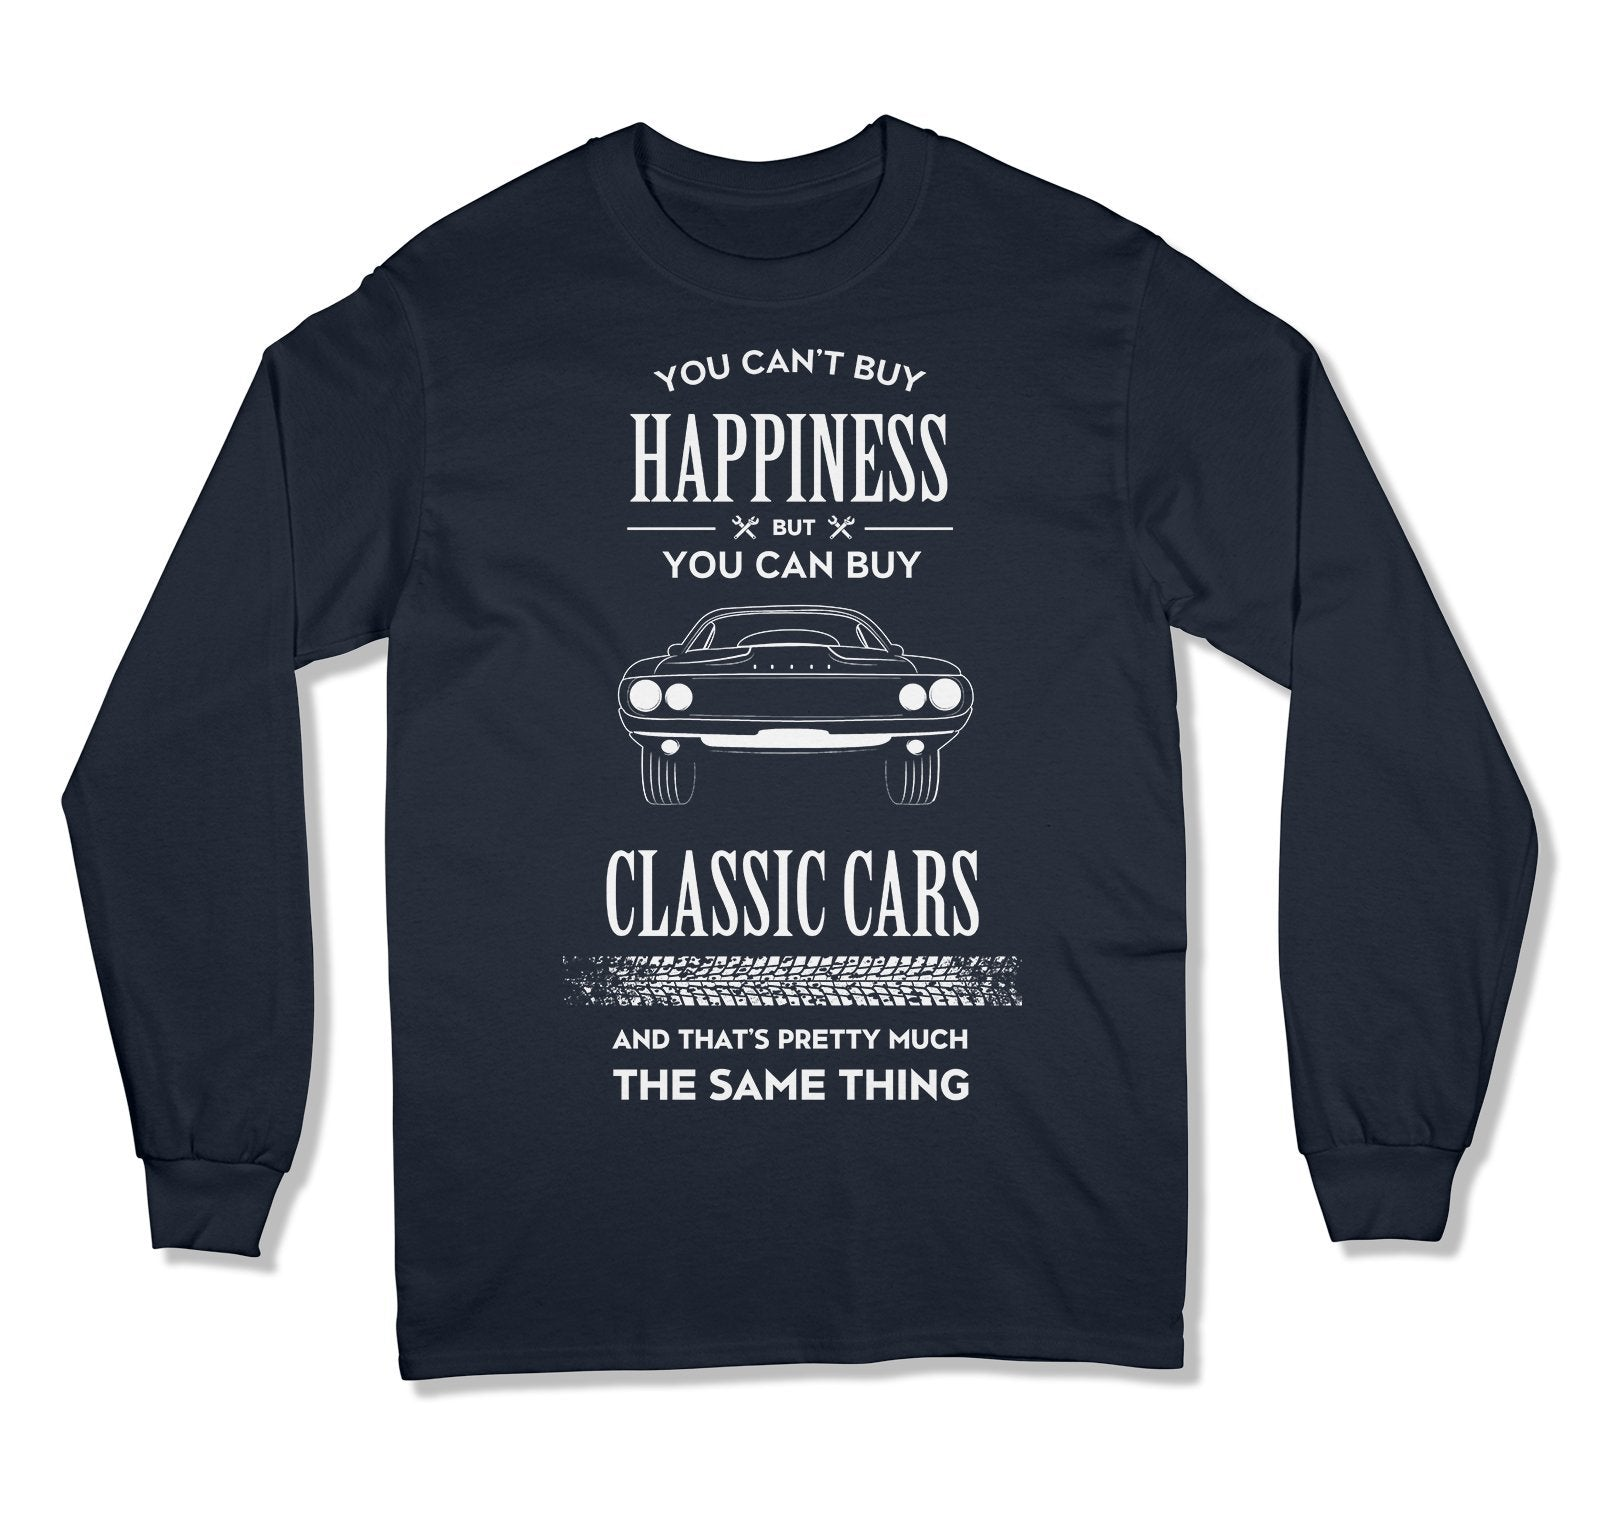 You Can't Buy Happiness But You Can Buy Classic Cars T-Shirt - MD-447A